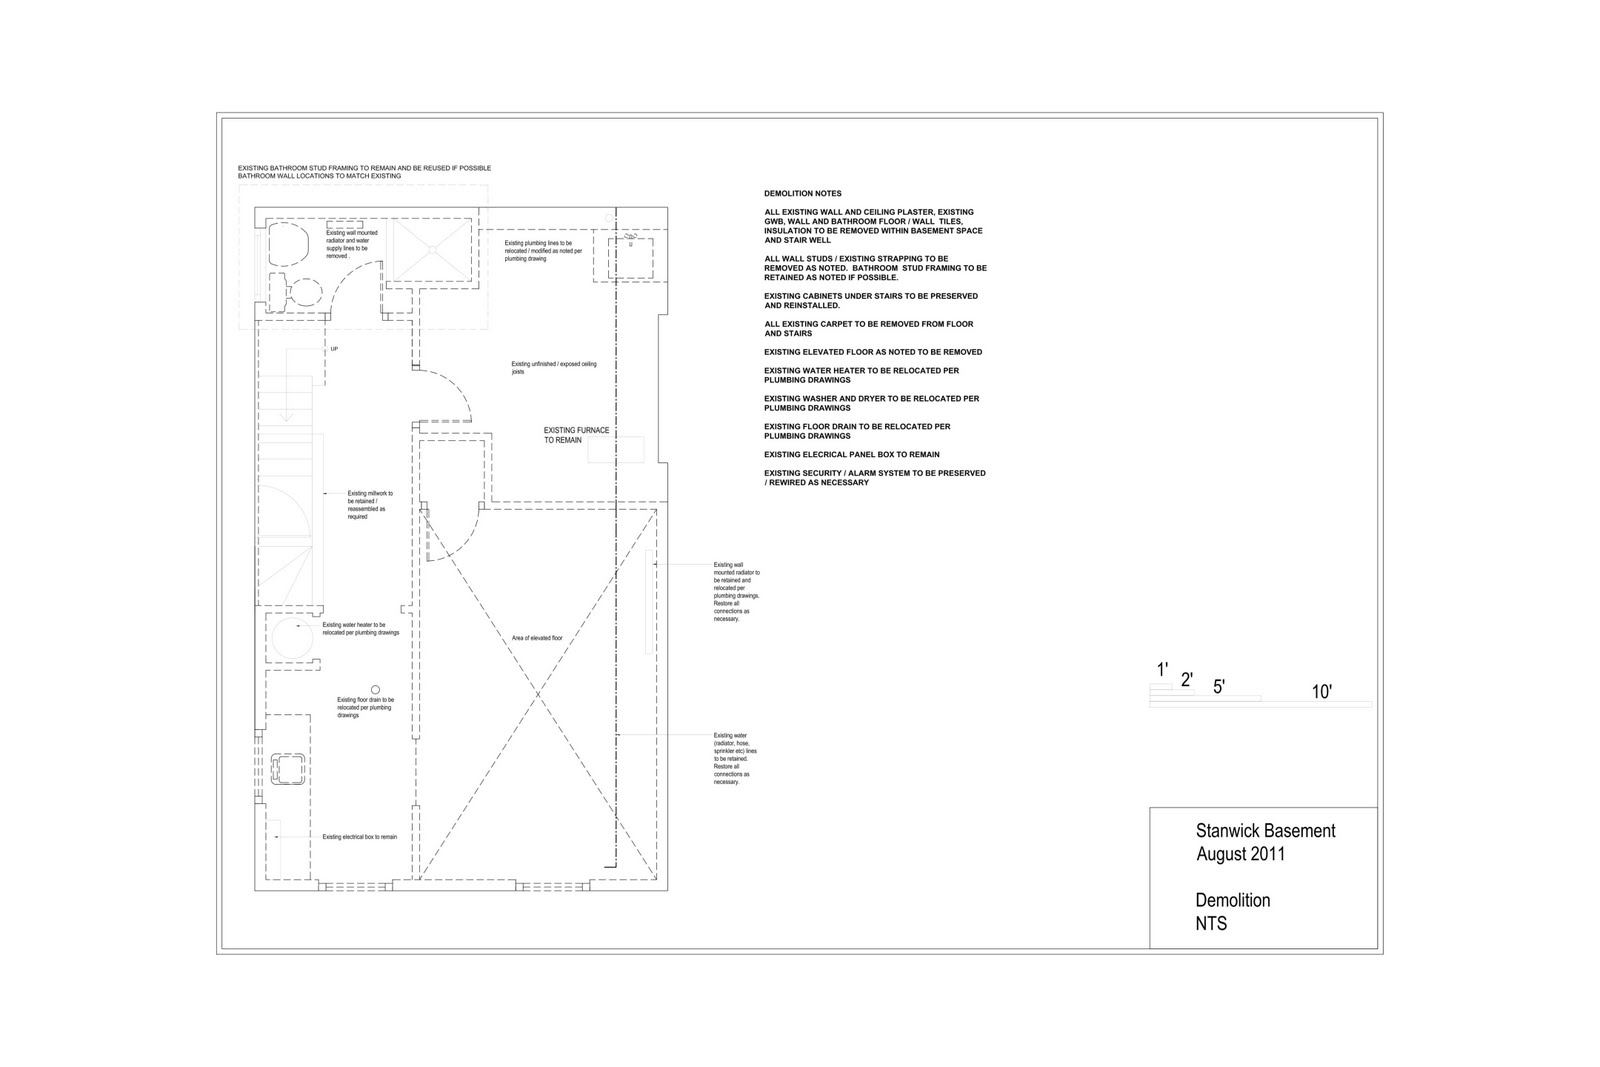 hight resolution of  the architectural plan the engineering plan the flooring plan the electrical plan and the walls trims finishes plan click on the pics above to see